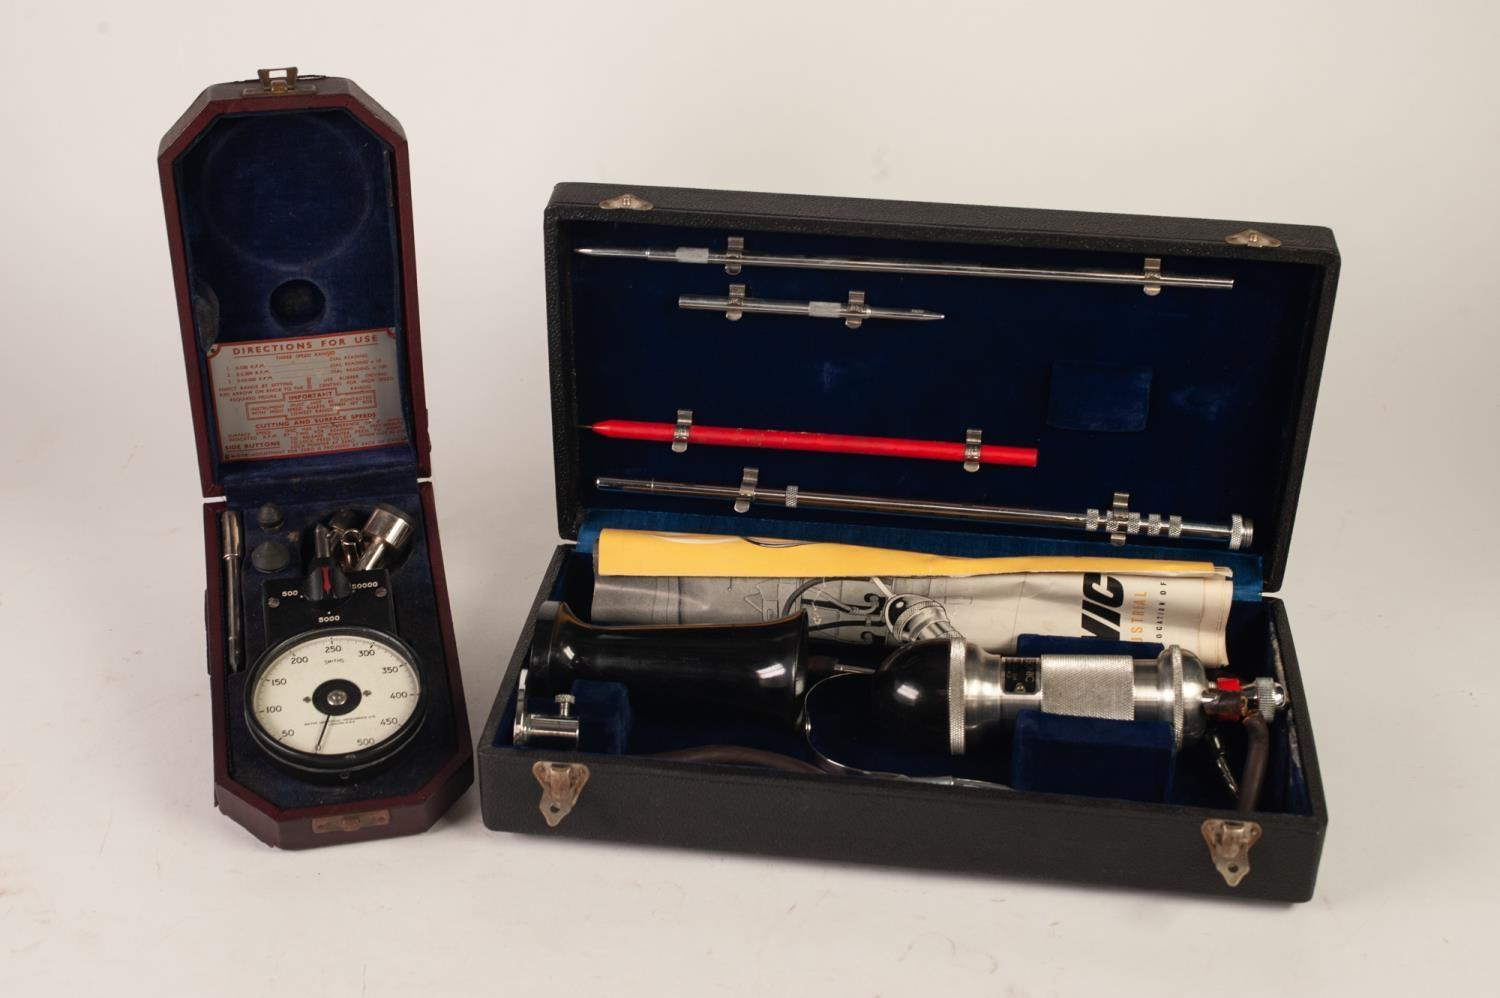 Lot 104 - THE MURCHIE TRADING CO. LONDON BOXED, VIRTUALLY MINT, AIR SONIC INDUSTRIAL STETHESCOPE complete with